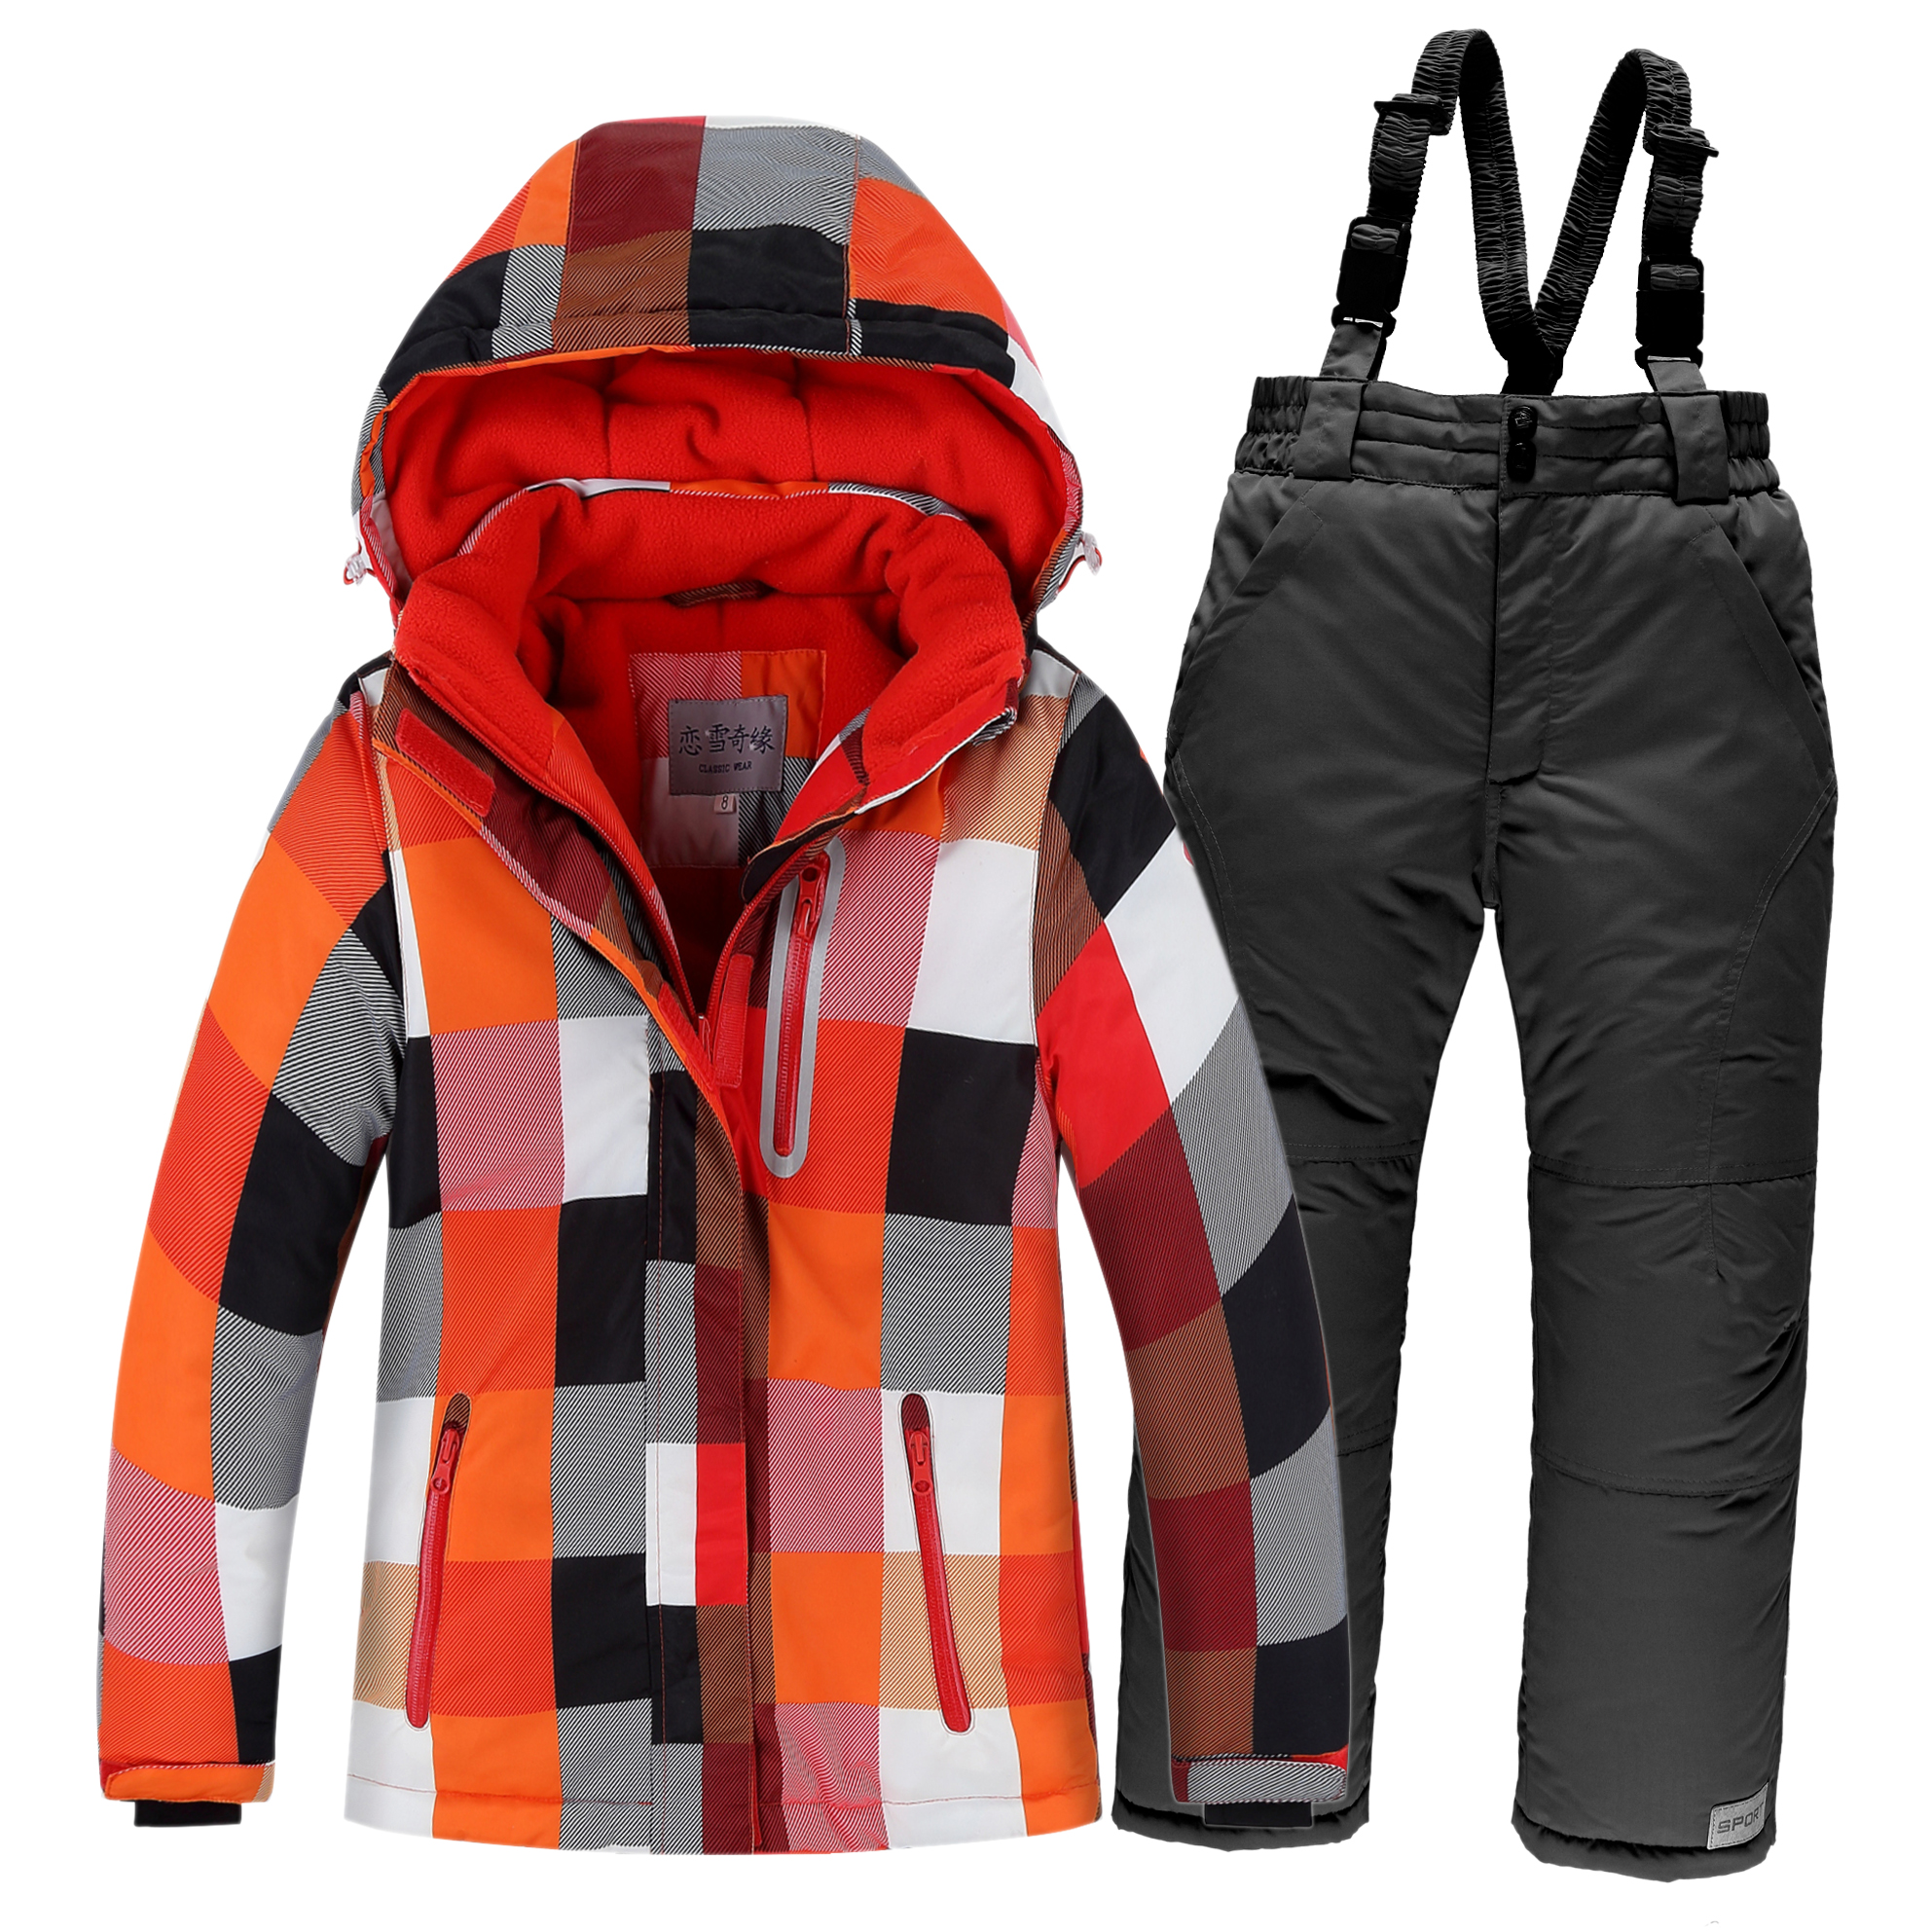 For 30 Degree Children Outerwear Warm Coat Sporty Ski Suit Kids Clothes Sets Waterproof Windproof Boys Jackets For 3 16T